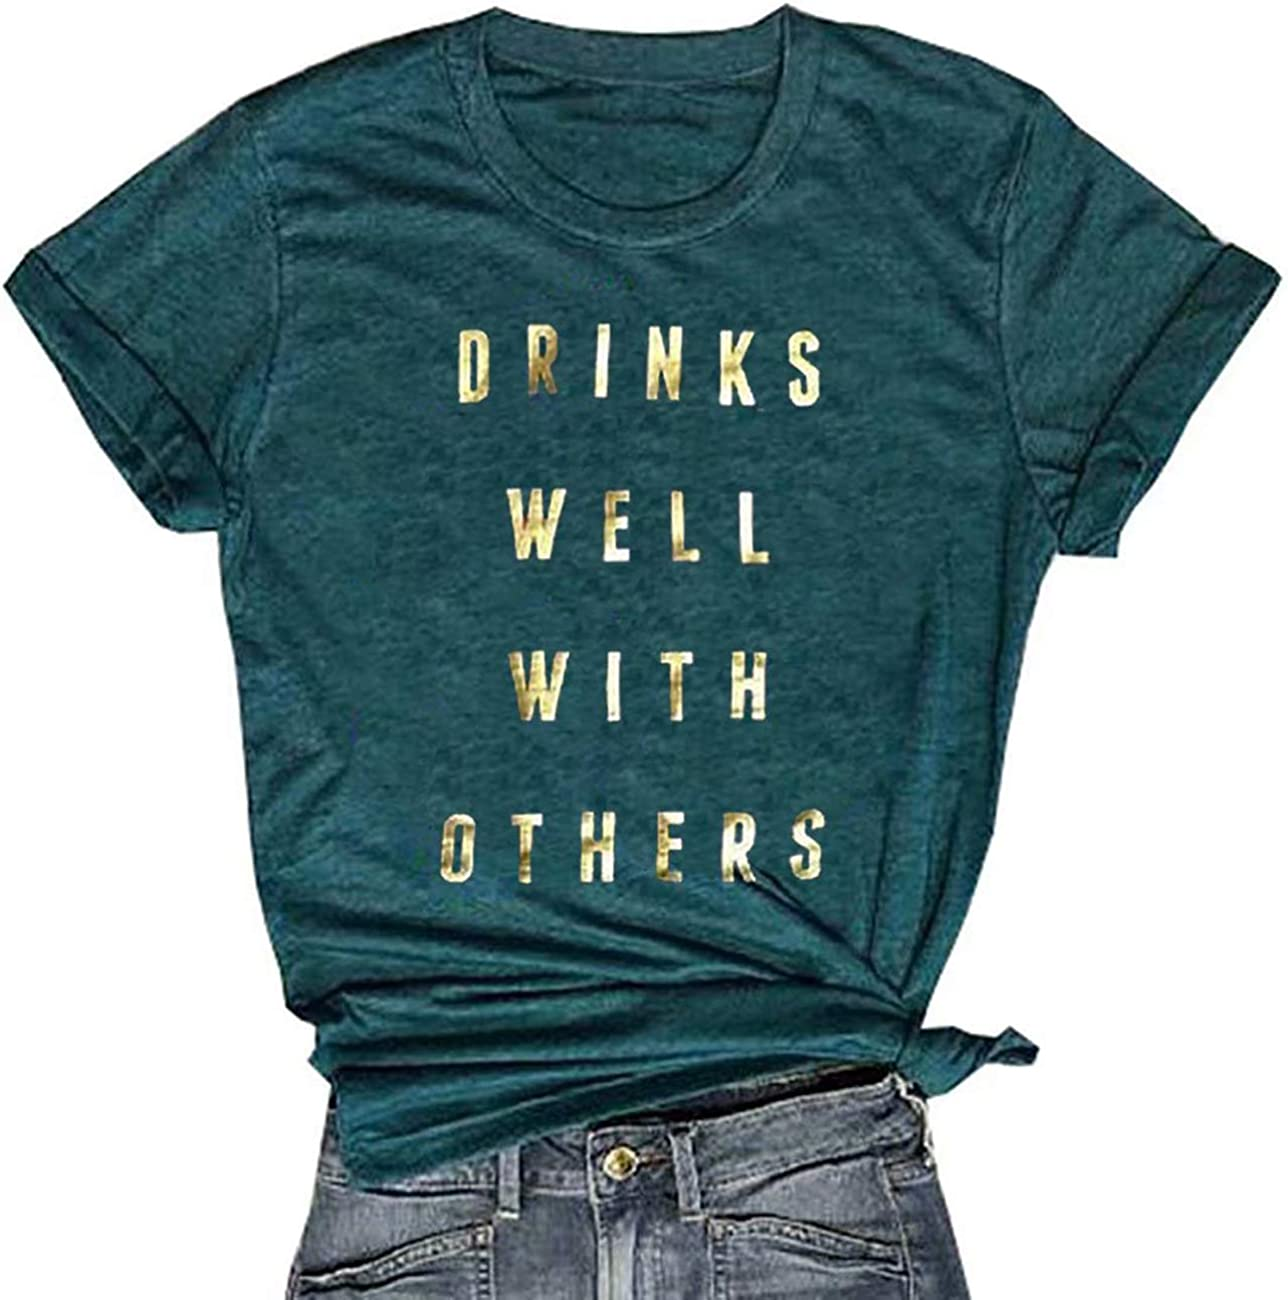 Drinks Well with Others T Shirt Women Letter Print Alcohol Drinking Shirts Funny Saying Graphic Tee Tops